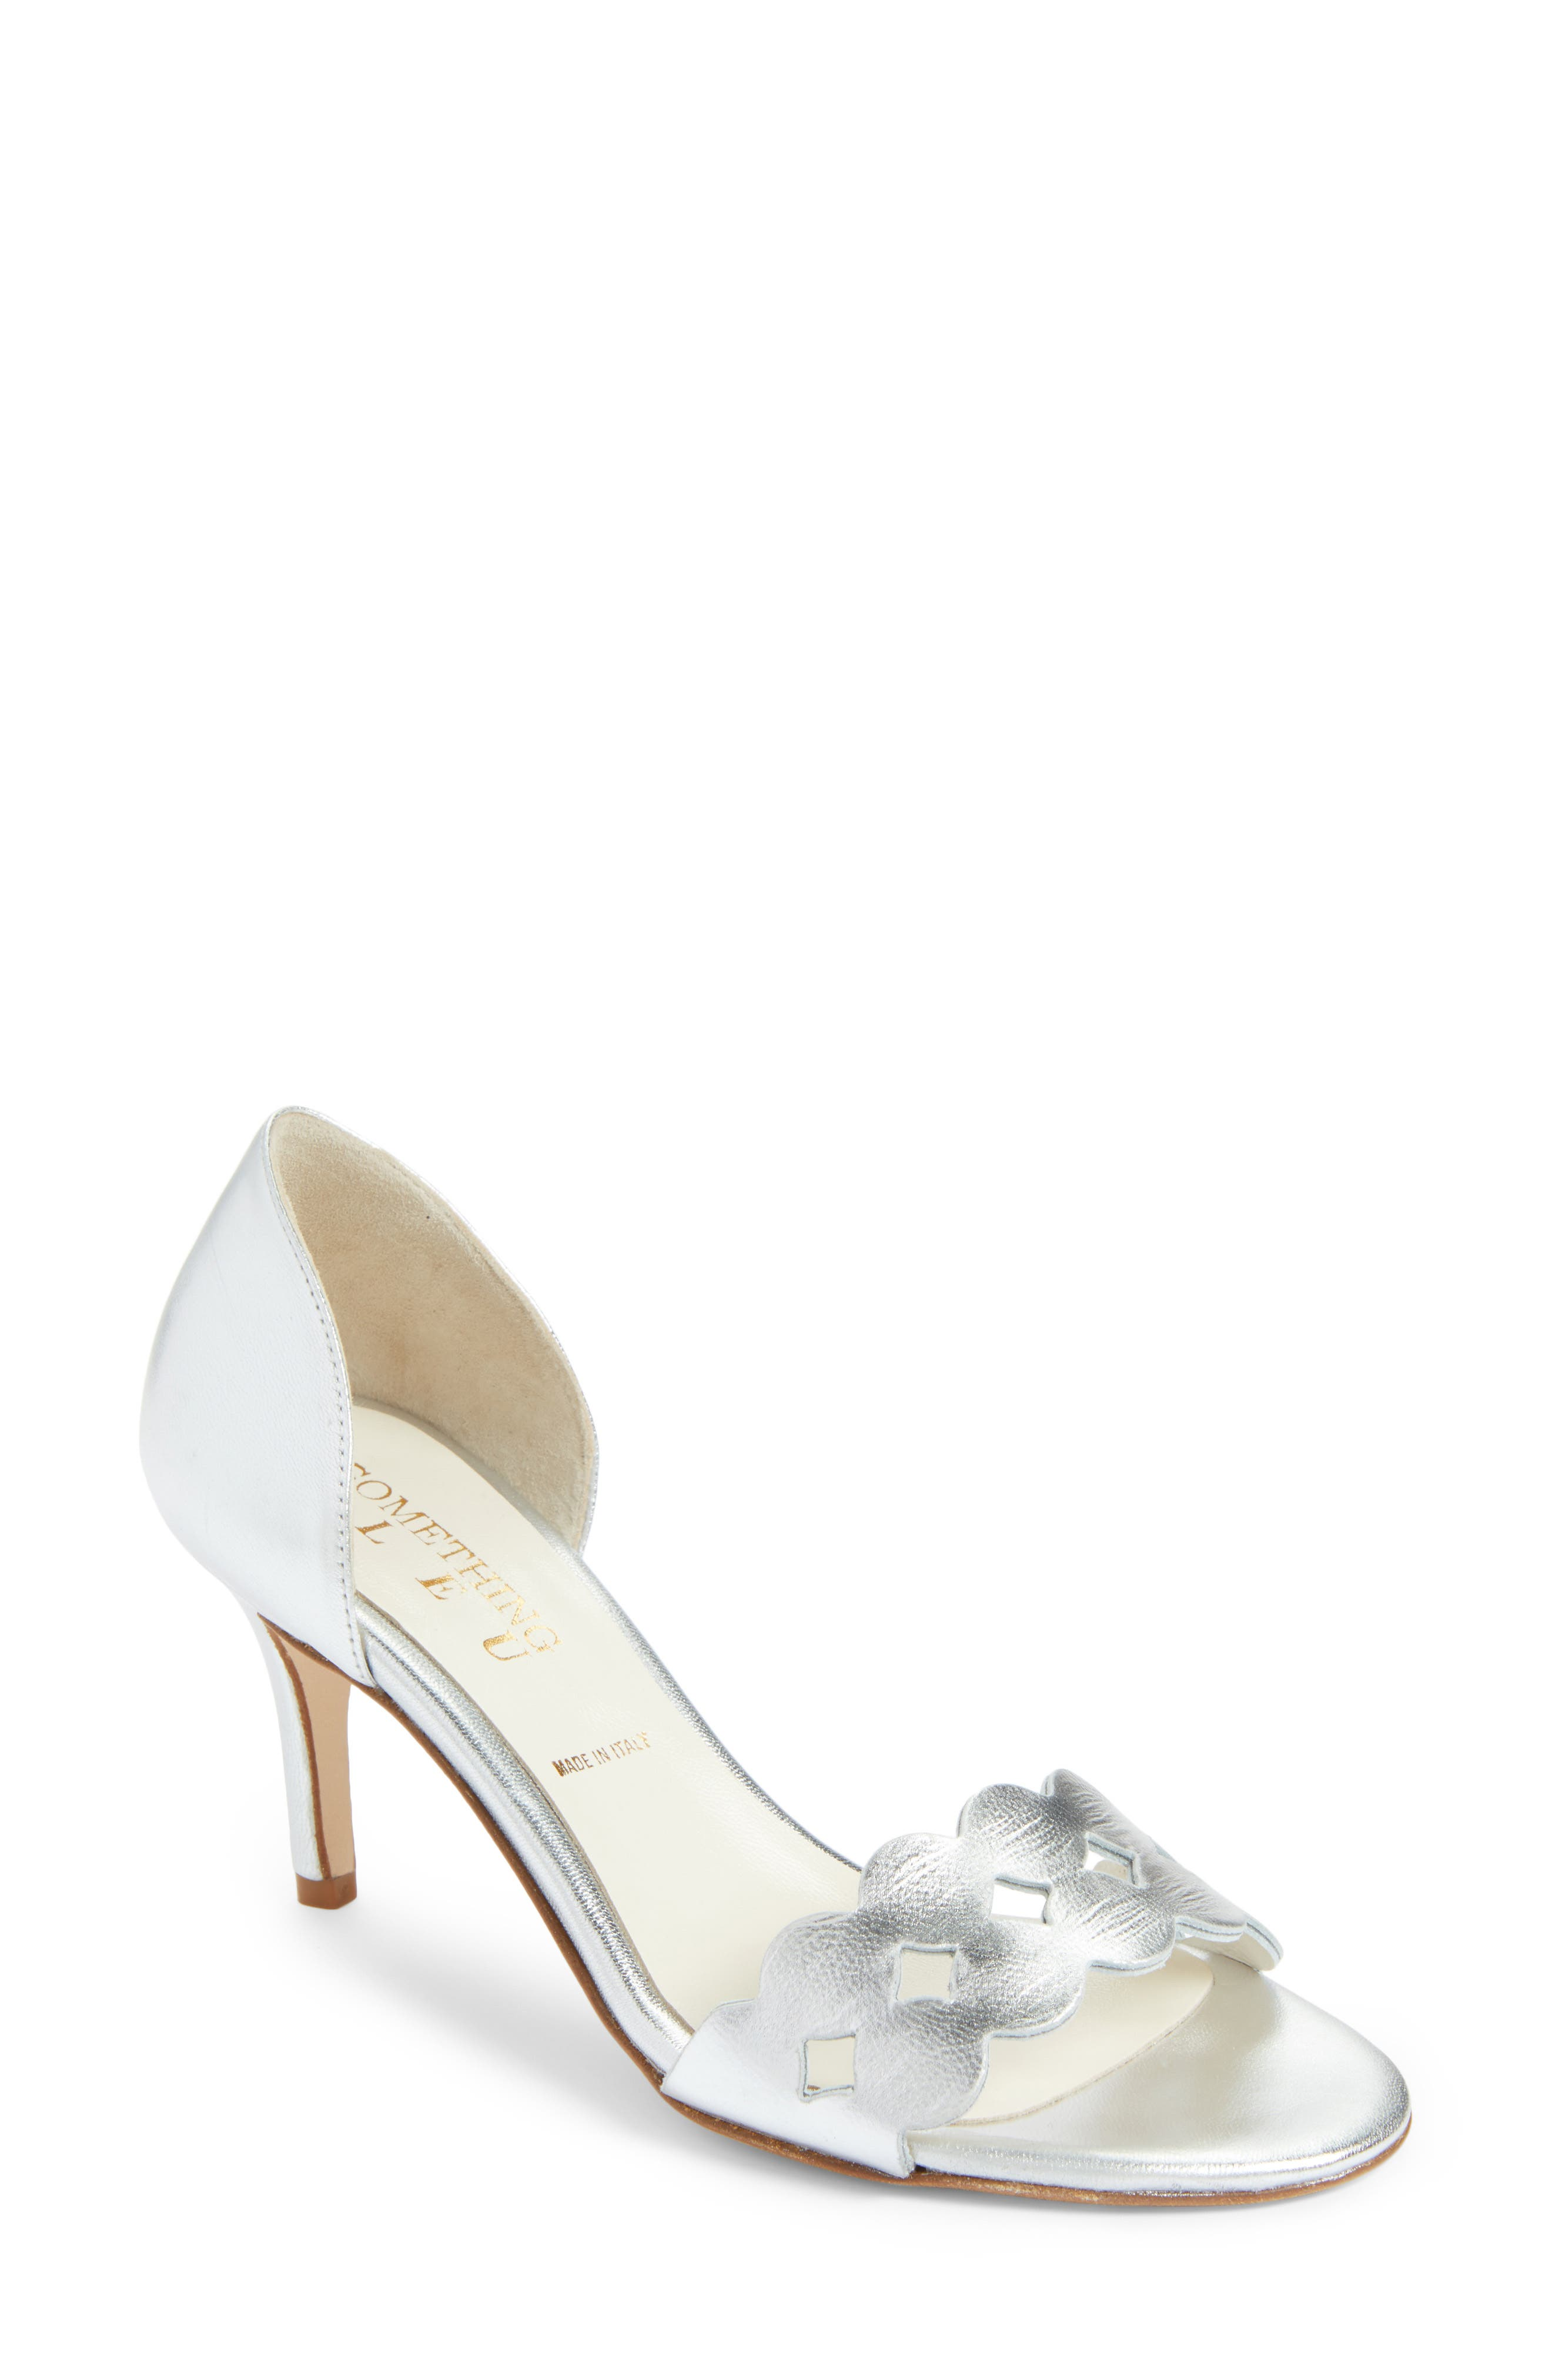 Catherine Cutout Sandal,                             Main thumbnail 1, color,                             SILVER METALLIC NAPPA